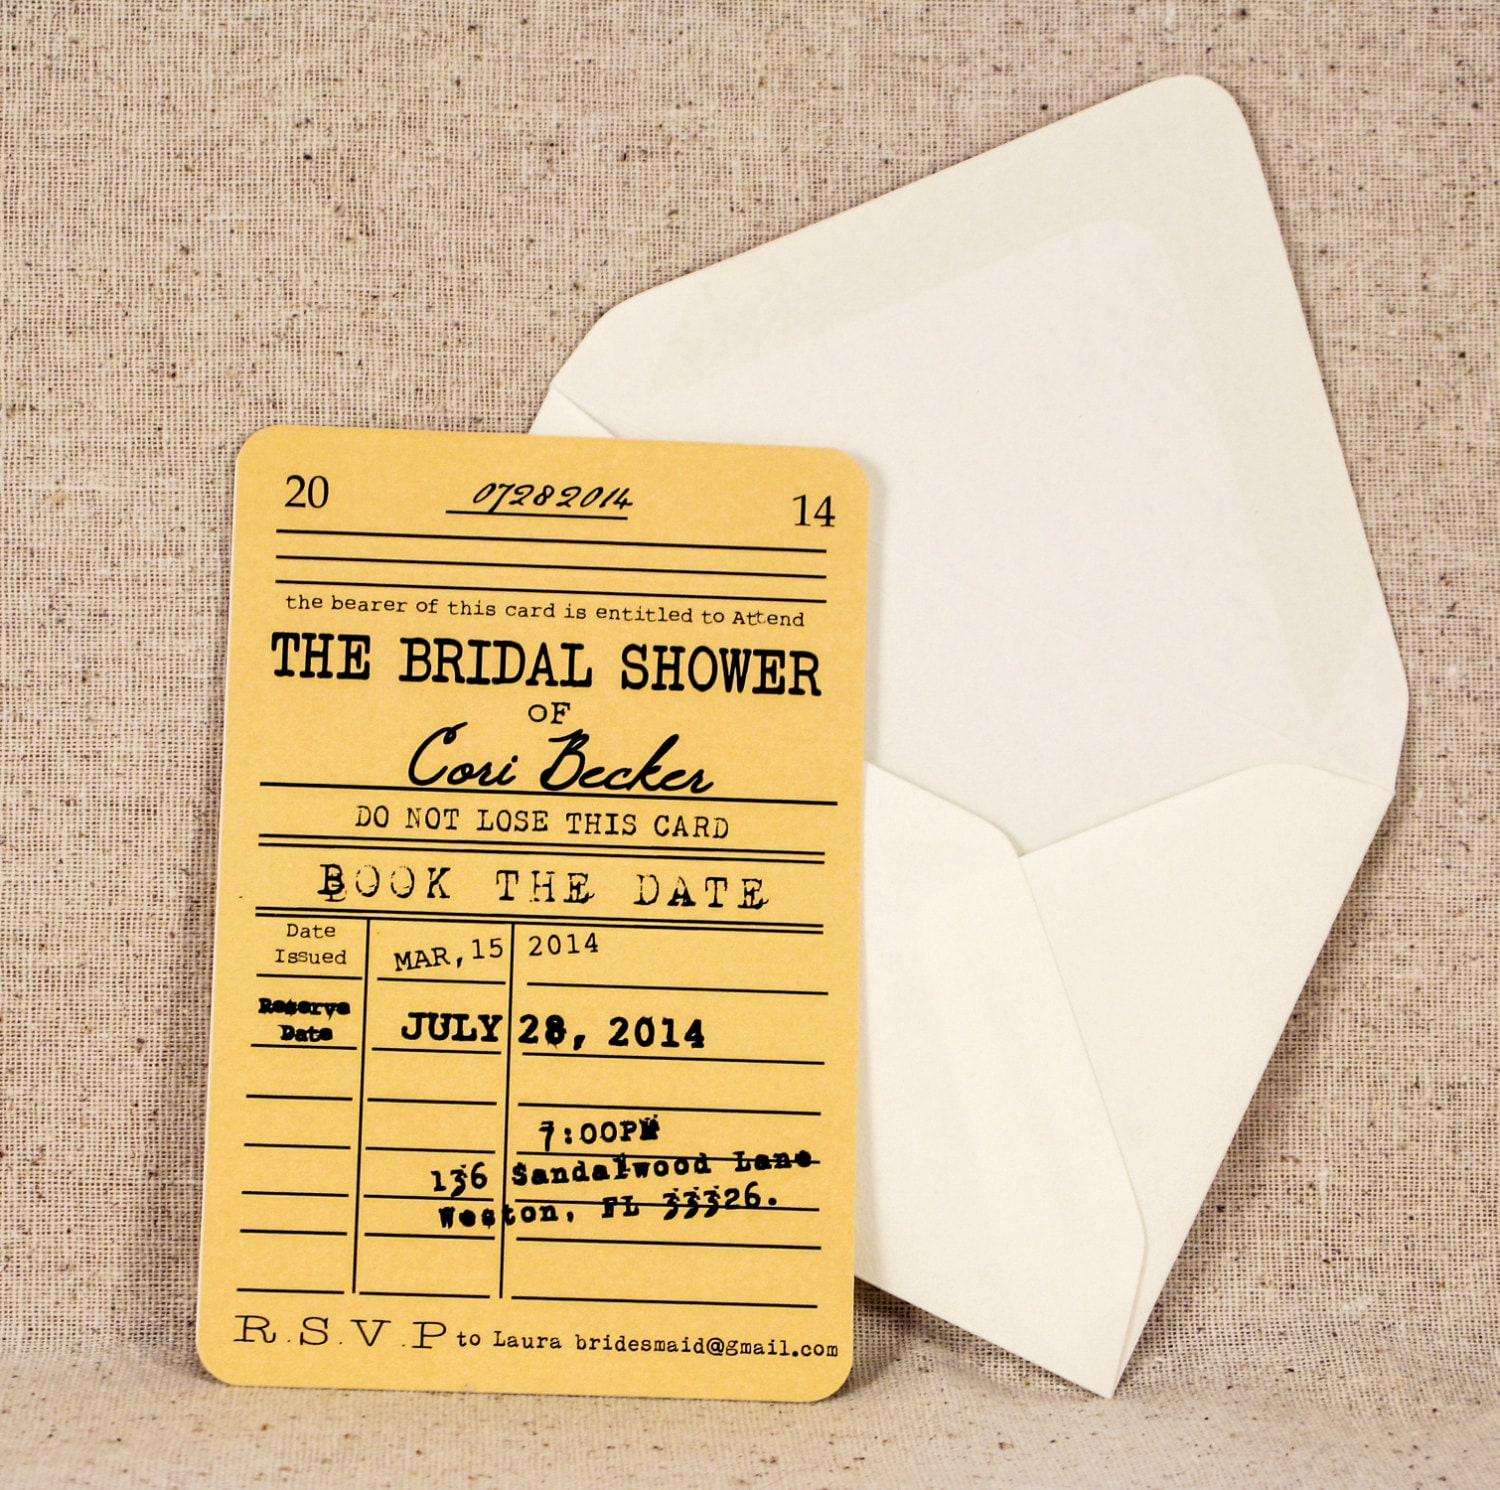 Card bridal shower invitation vintage literary theme zoom filmwisefo Image collections